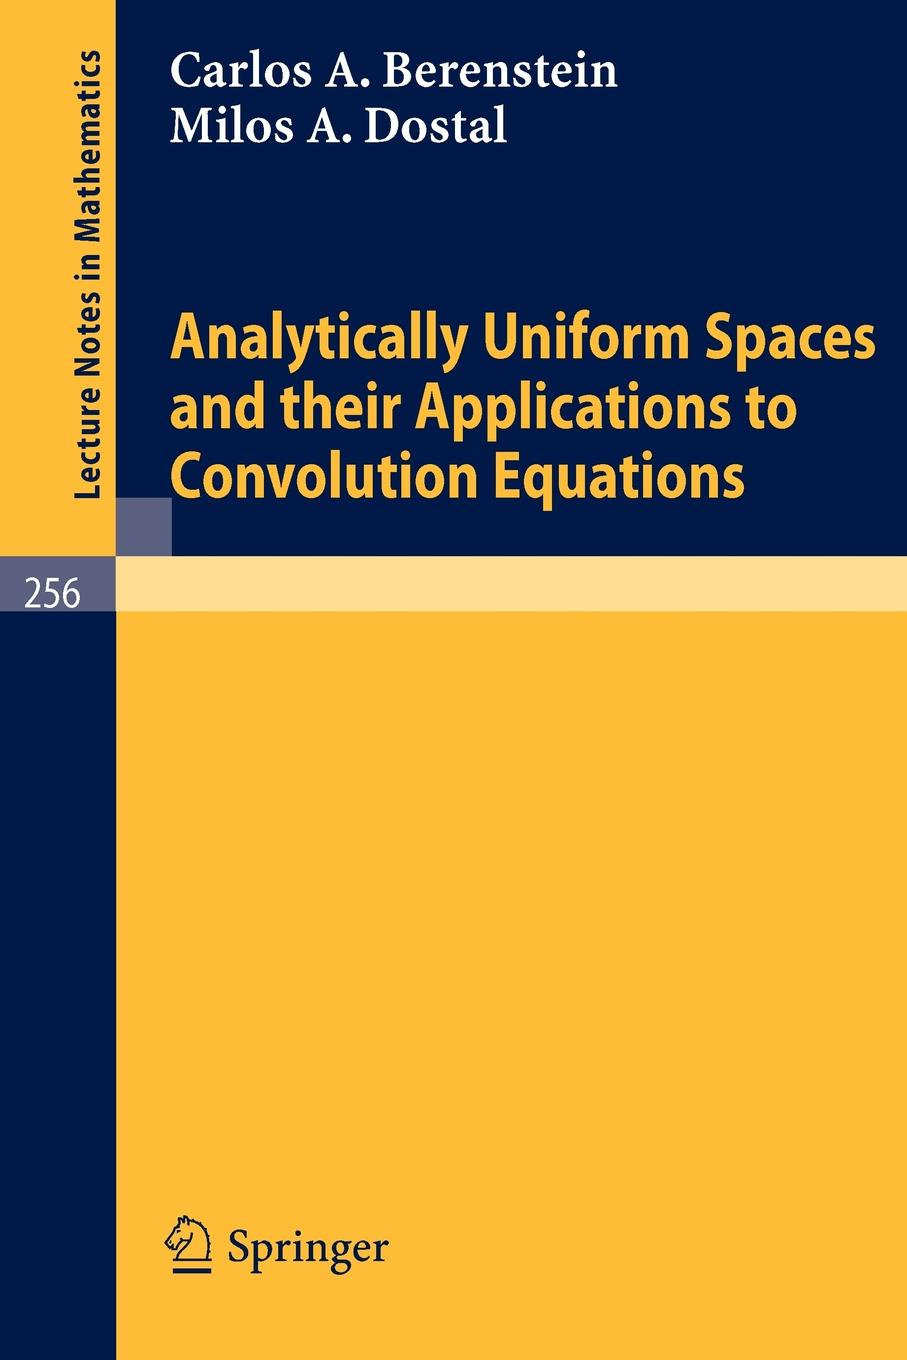 C. A. Berenstein, M. A. Dostal Analytically Uniform Spaces and Their Applications to Convolution Equations clarke m working spaces